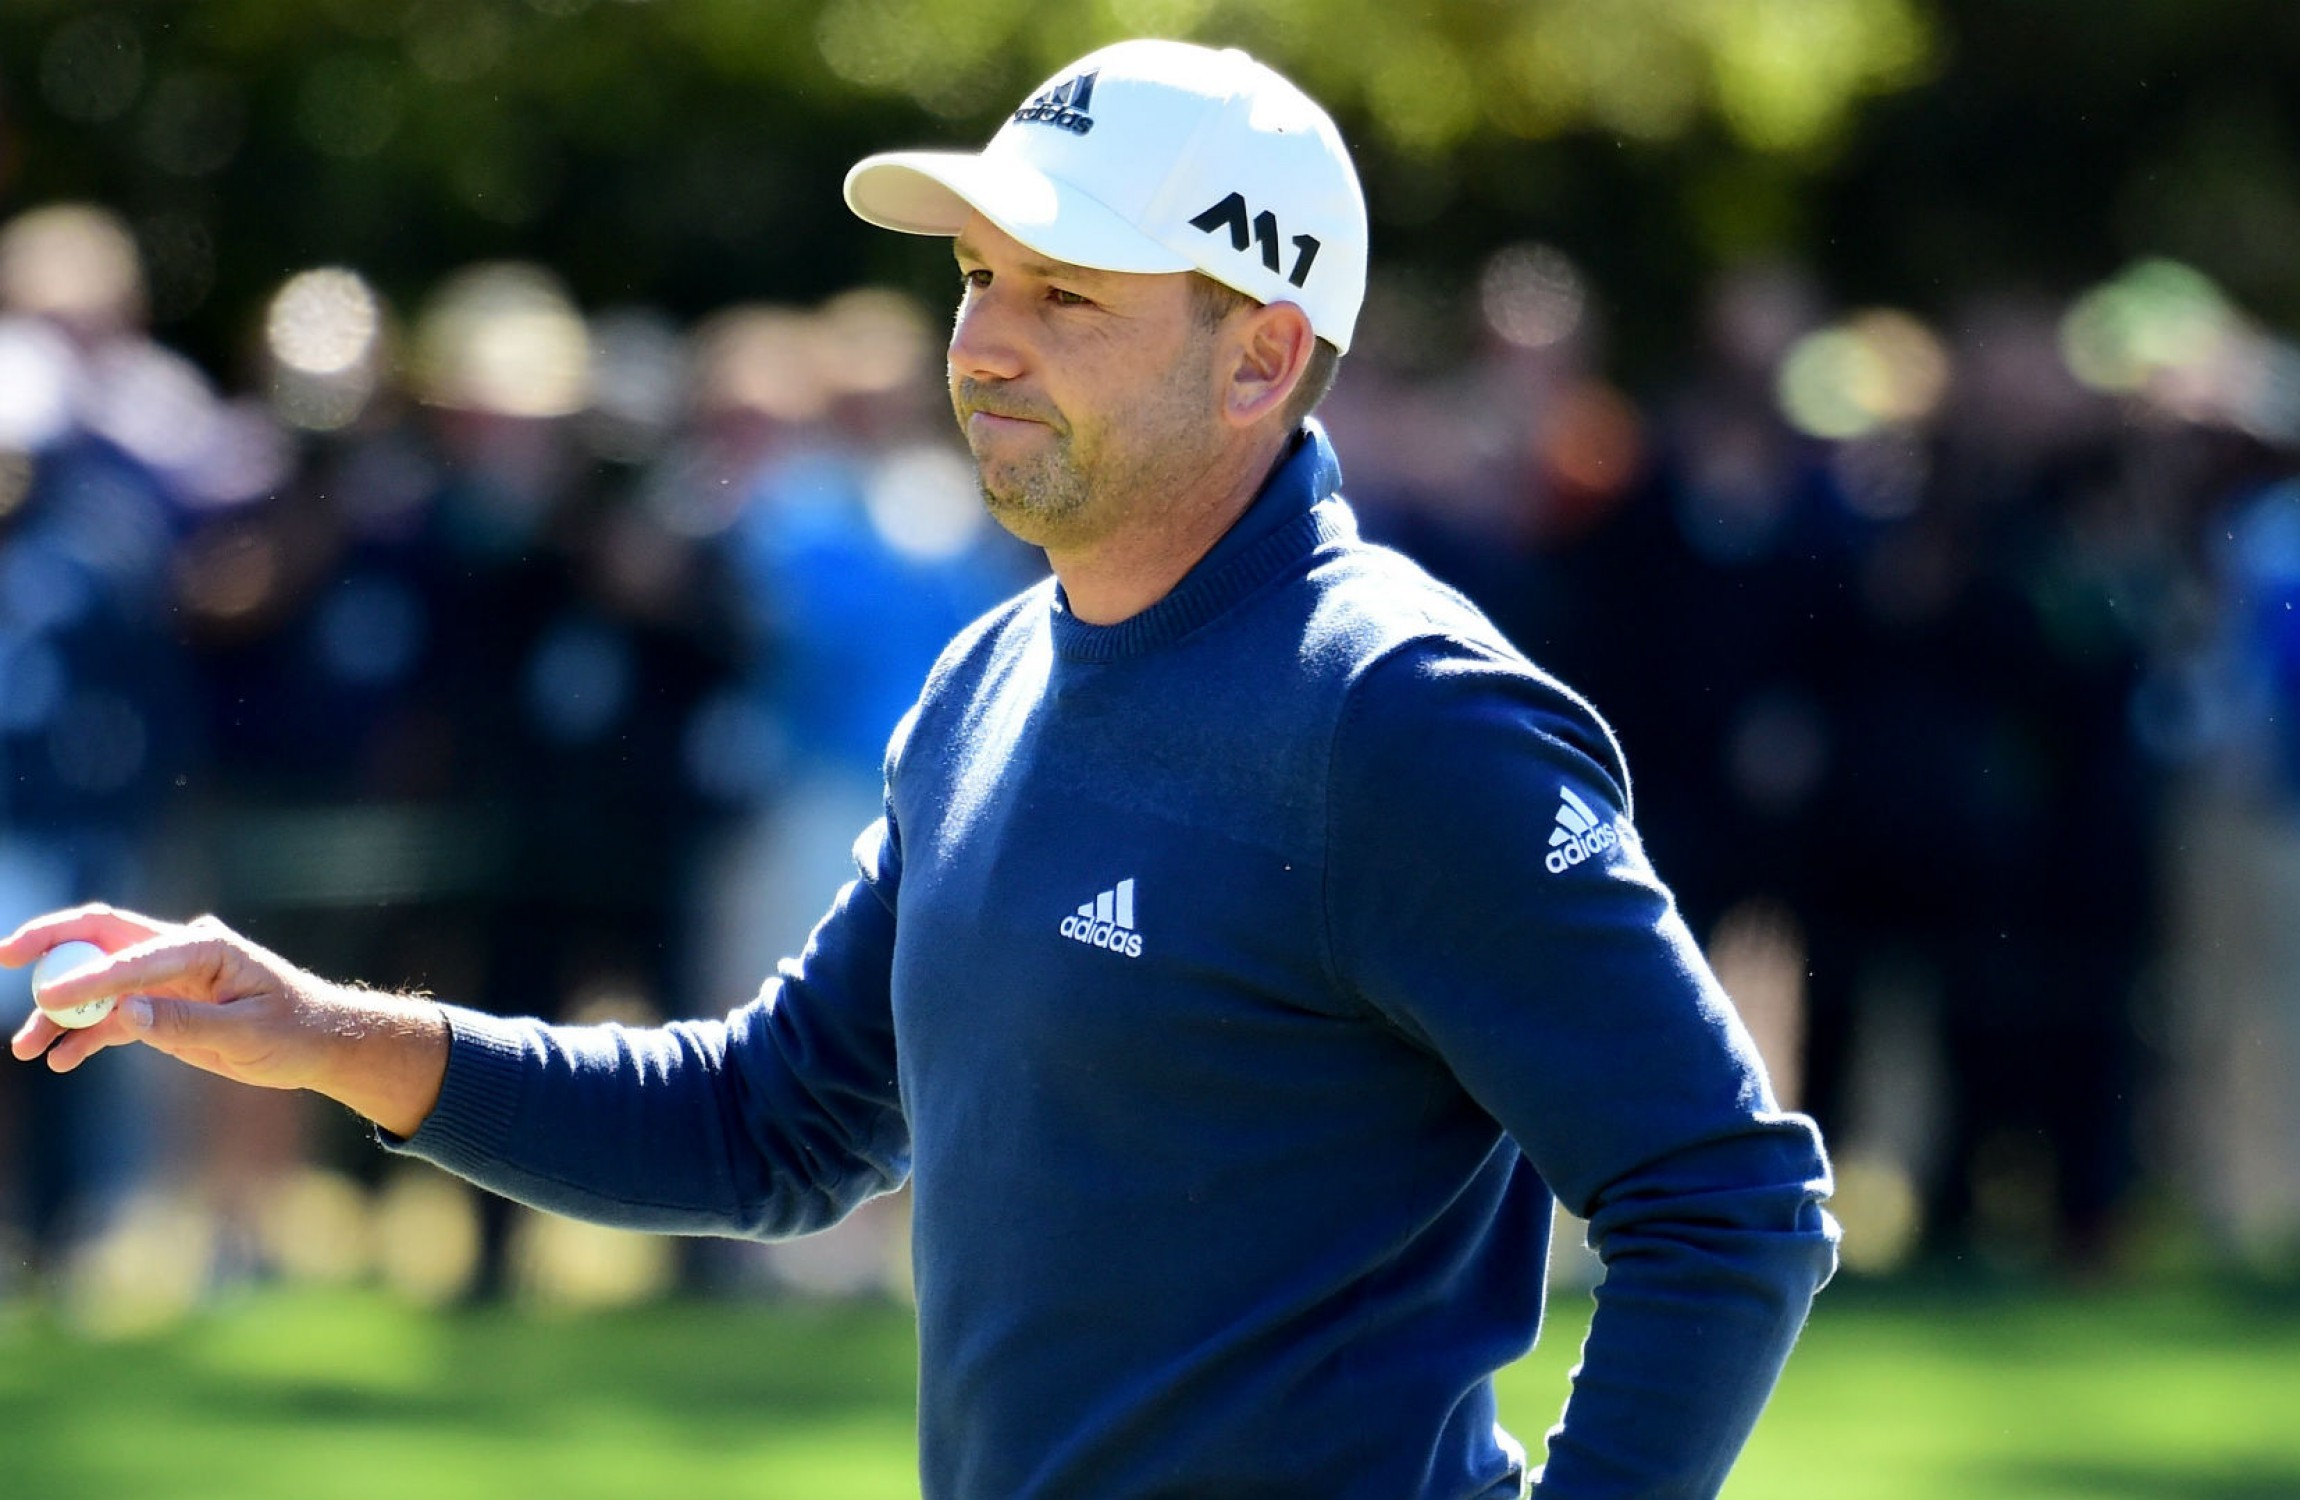 WRAPUP 1-Golf-Garcia grabs share of Masters lead, Couples three back